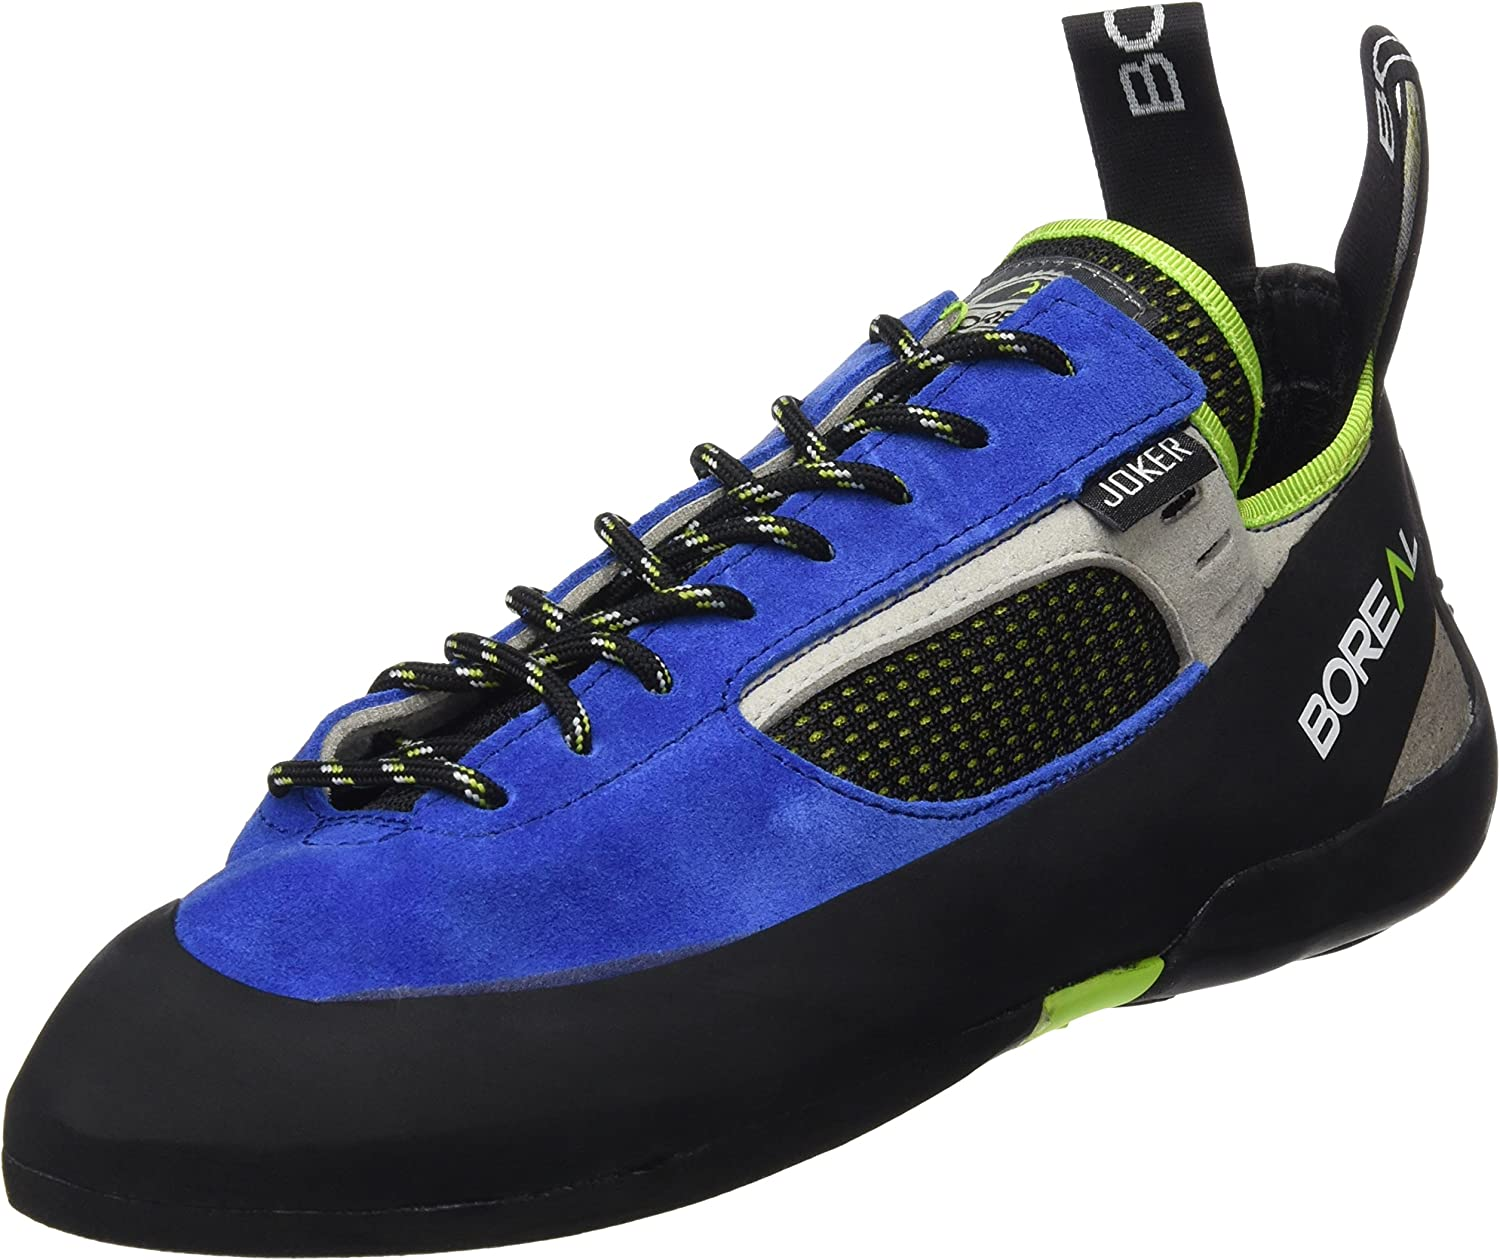 Boreal Sales Joker Lace Sports New products, world's highest quality popular! Shoes–Multicoloured Unisex